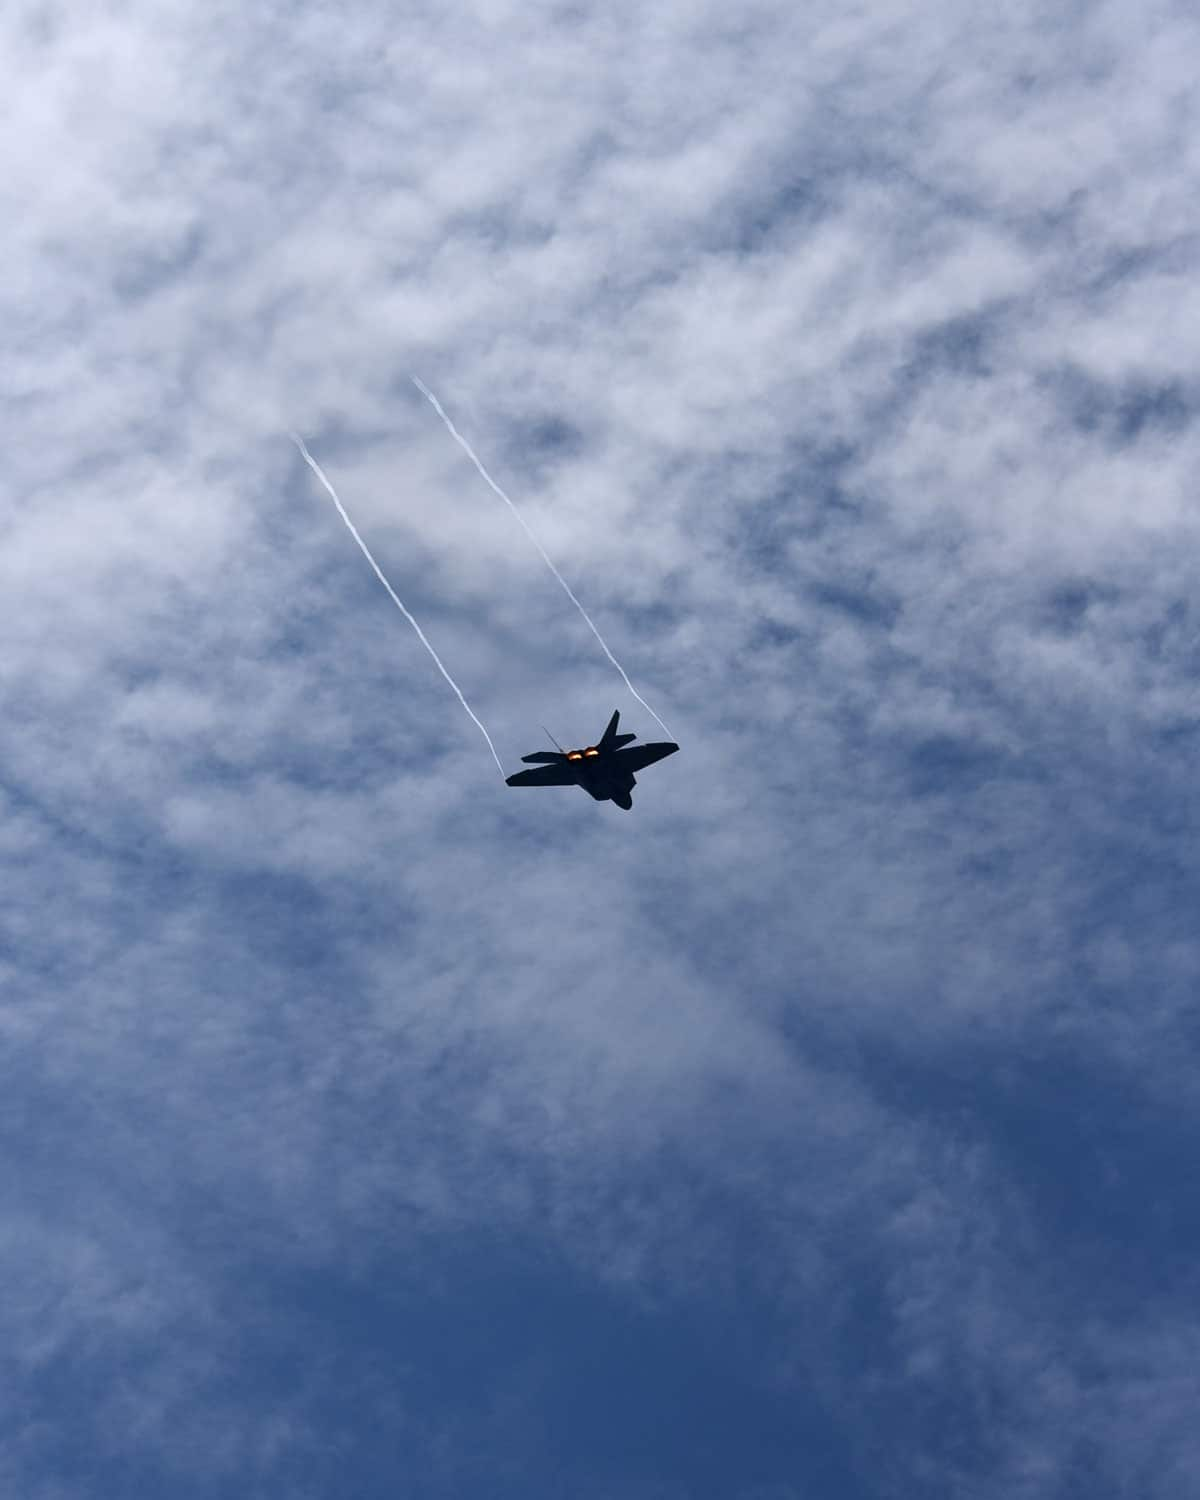 Tyndall evacuated its F-22s, QF-16 Aerial Targets, T-38 Talons, E-9A Widgets and other aerial assets in preparation for Hurricane Irma.